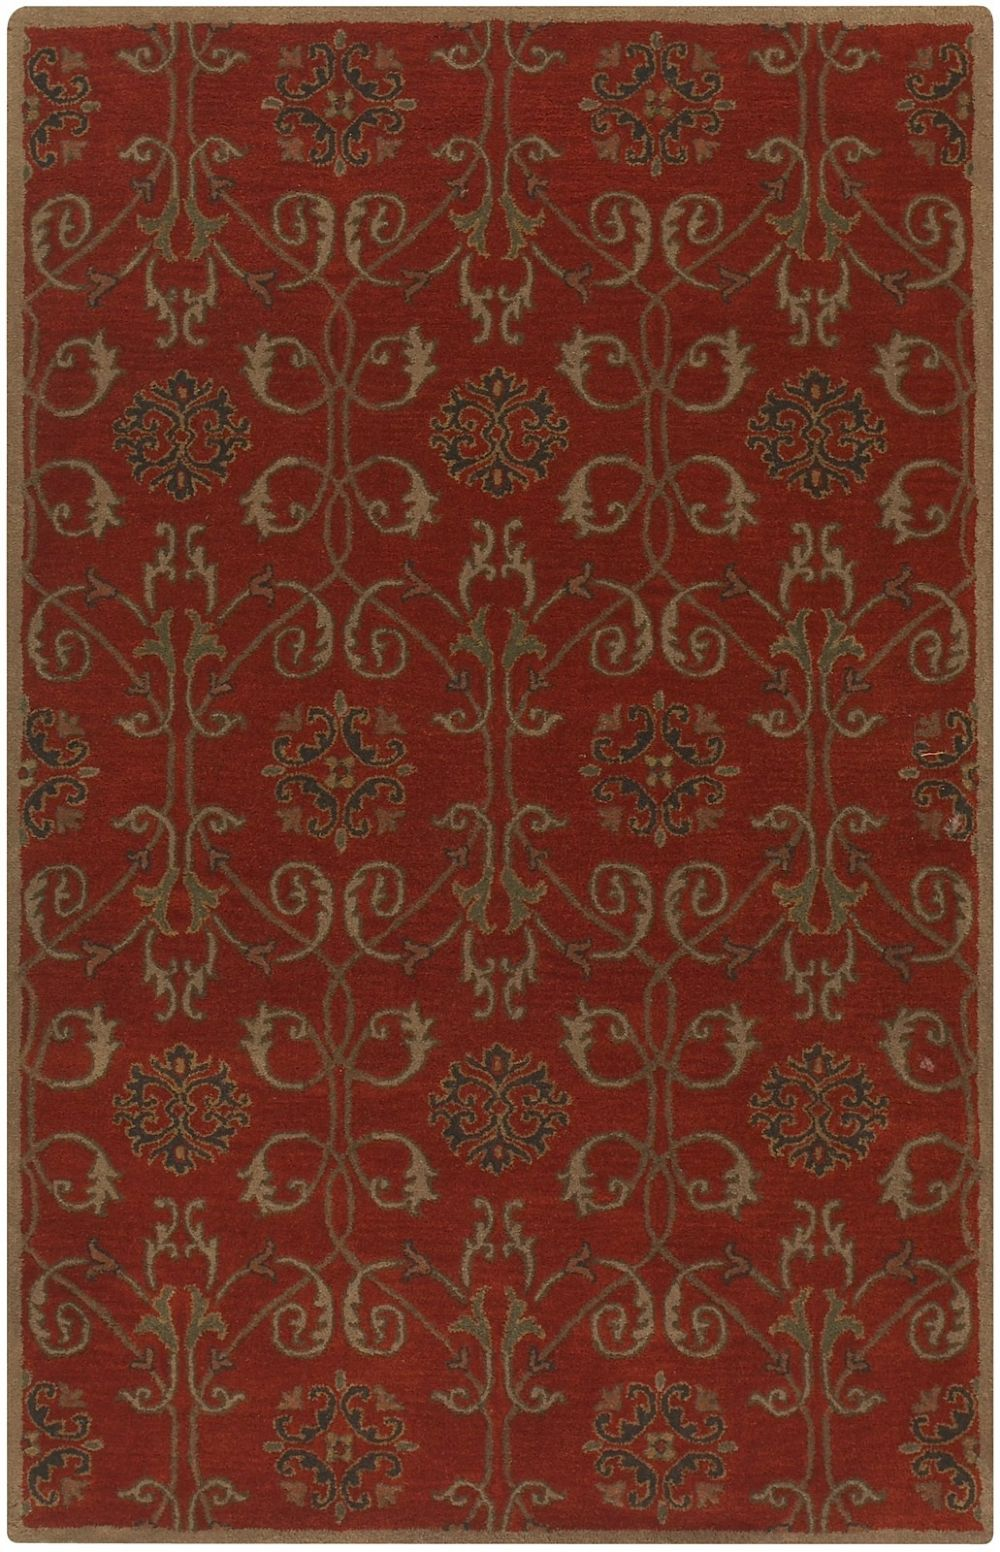 uttermost favara transitional area rug collection